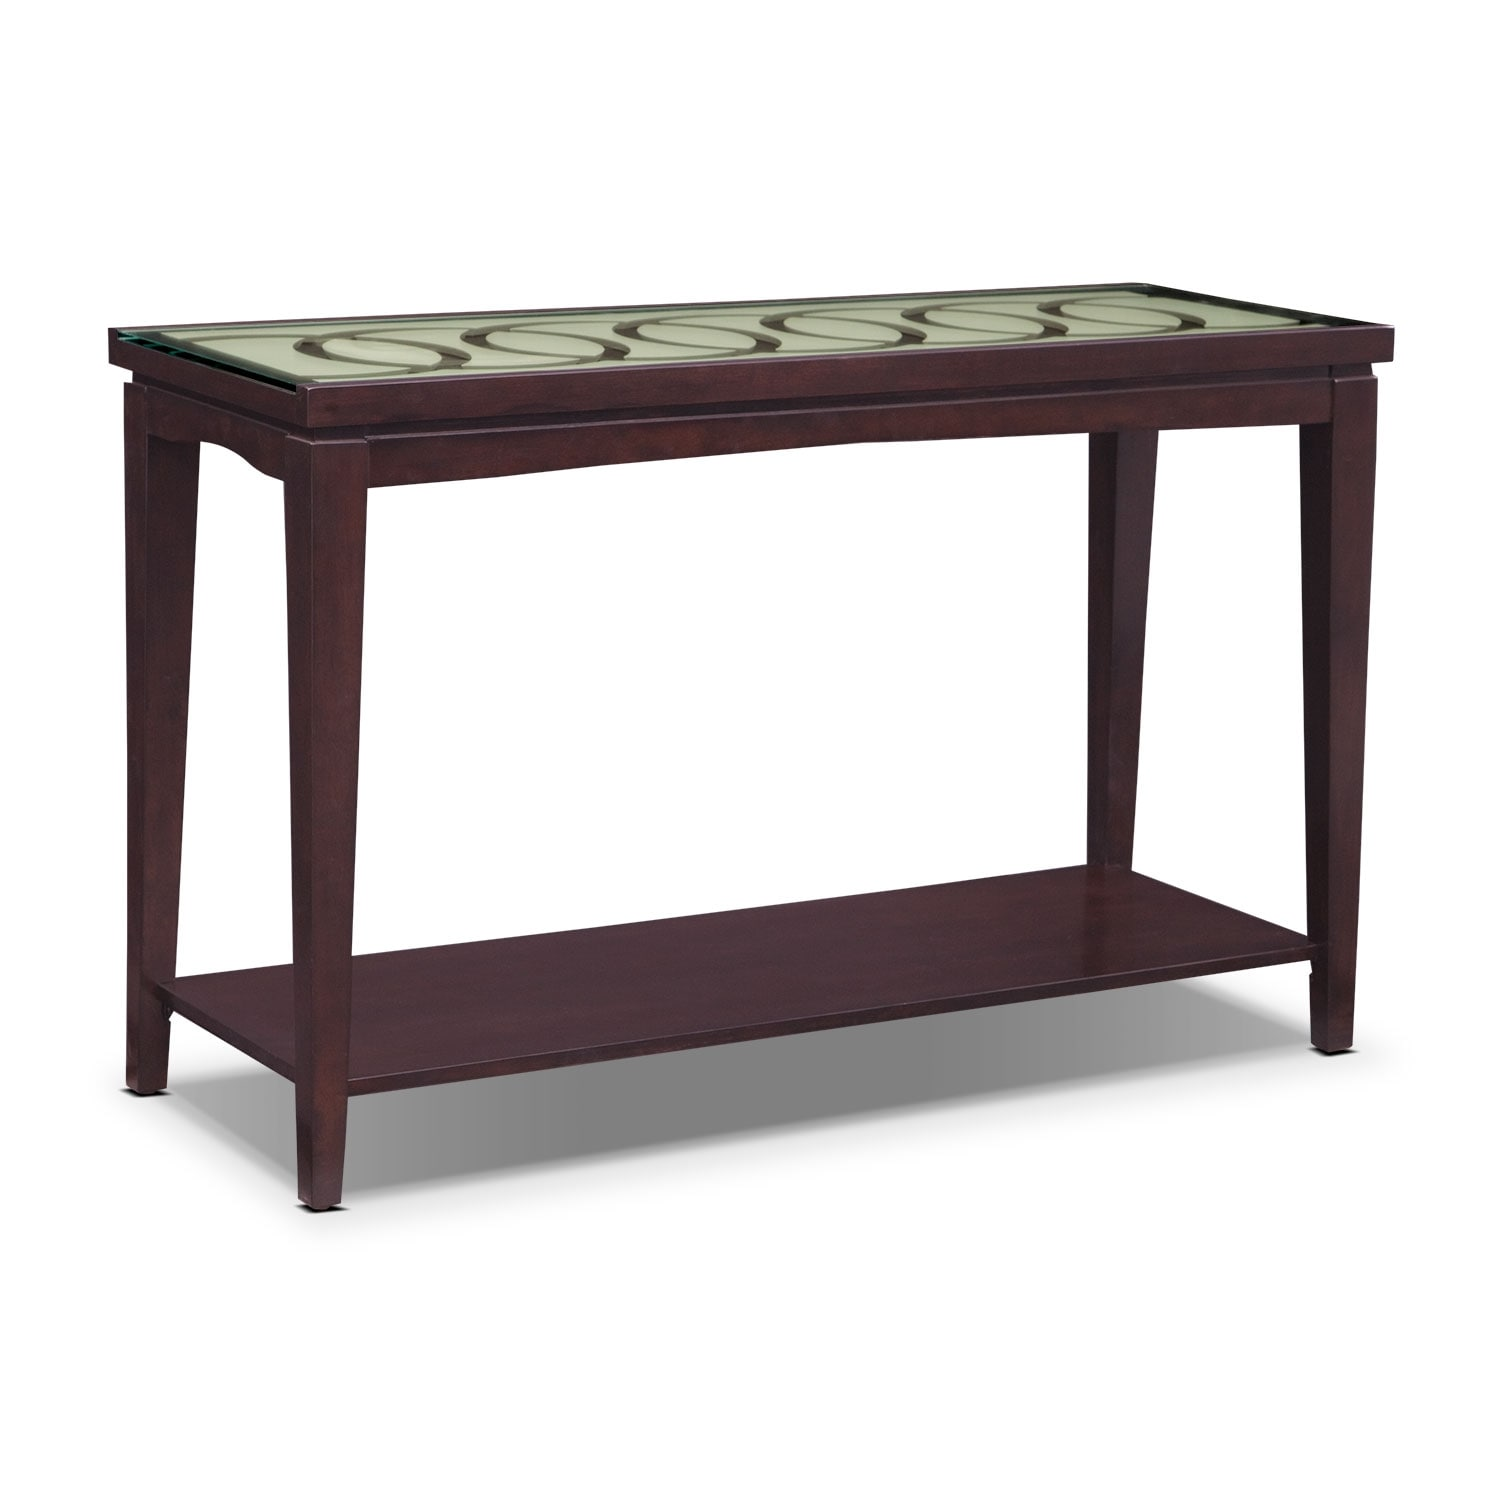 Cosmo Sofa Table - Merlot